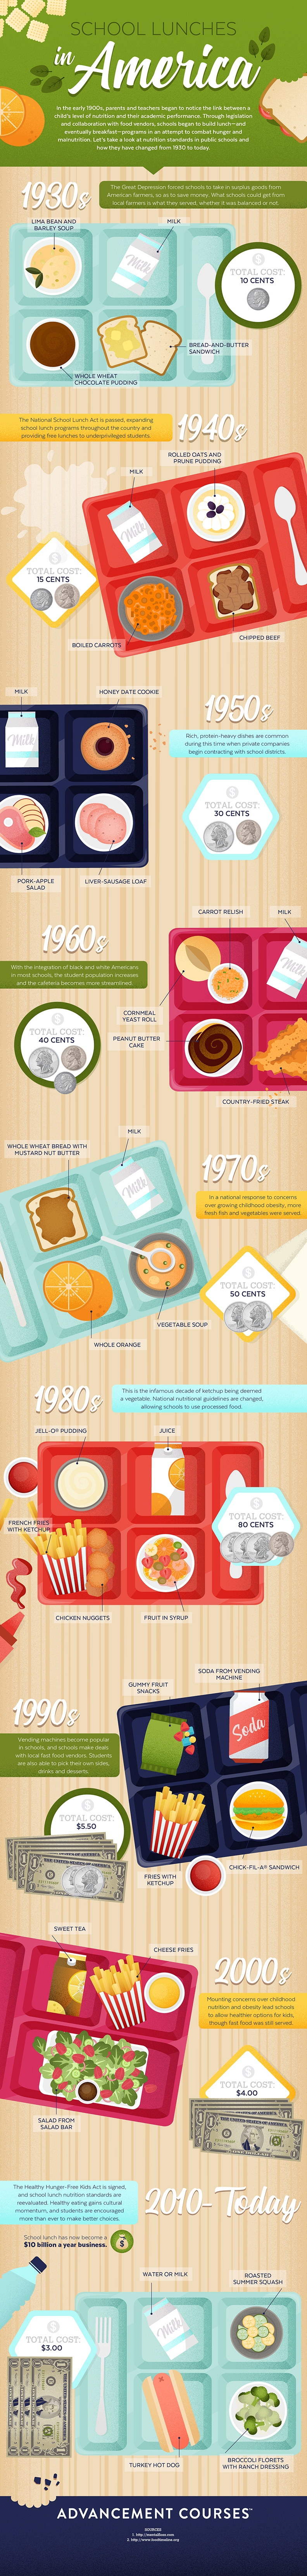 School Lunches in America Infographic